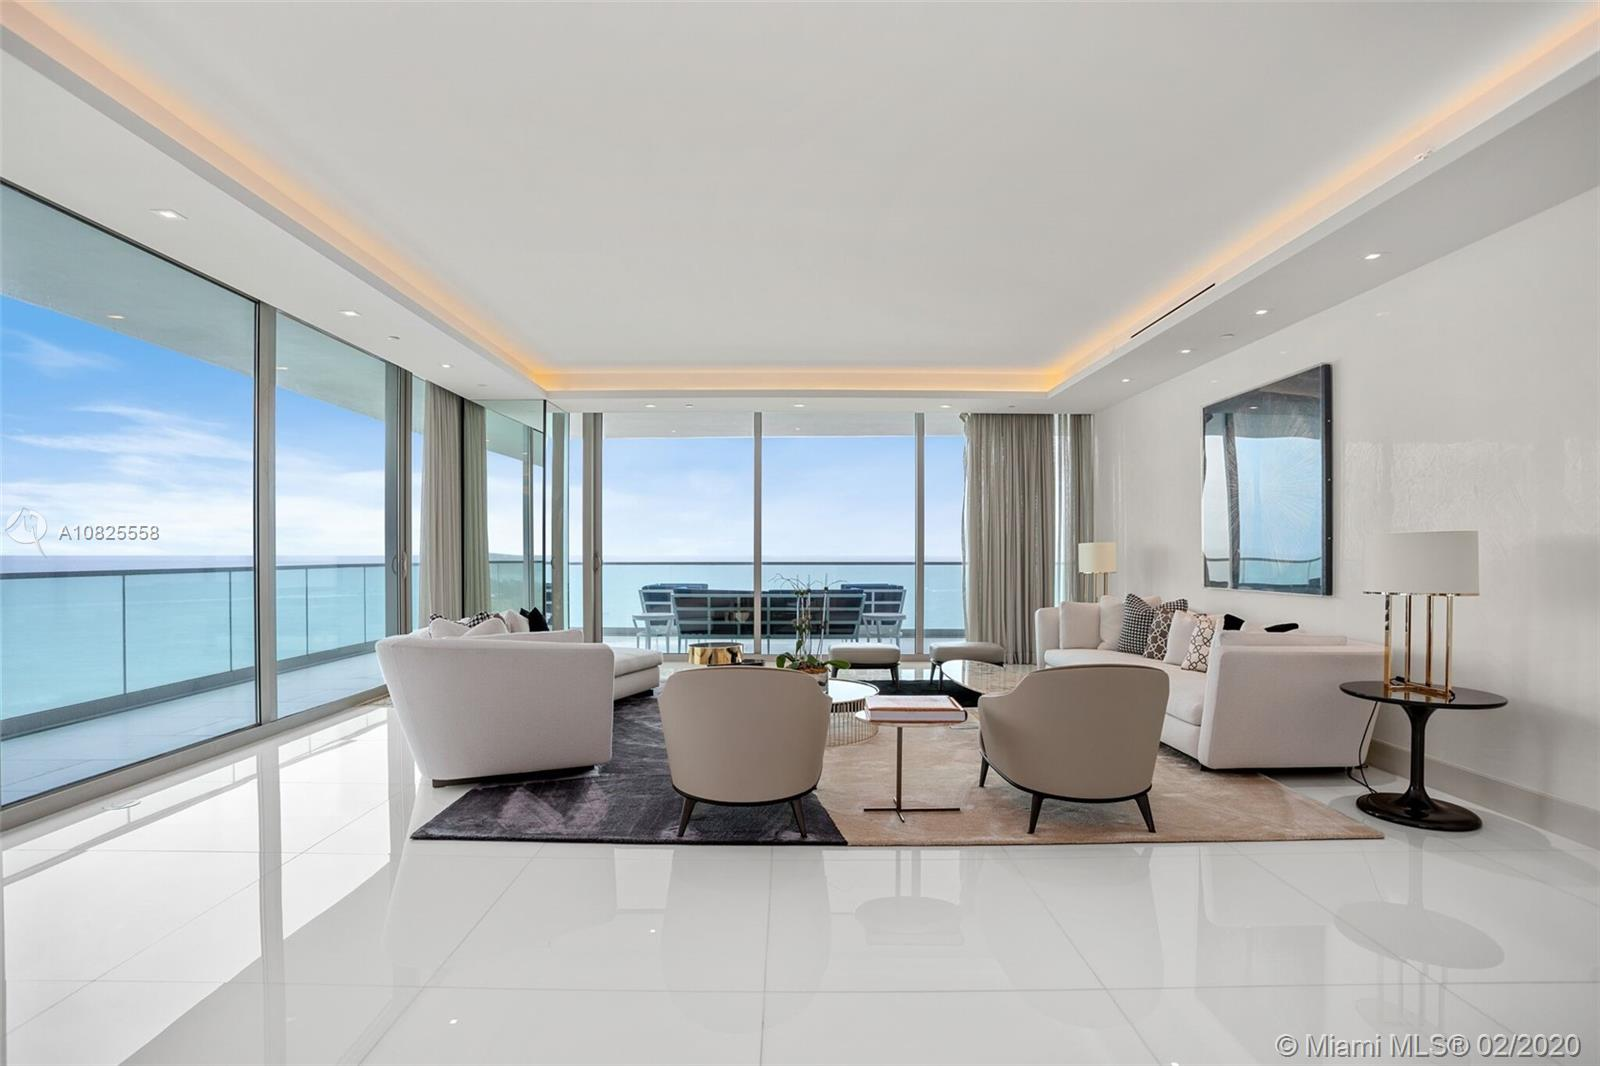 10203 Collins Ave, Unit #1001 Luxury Real Estate